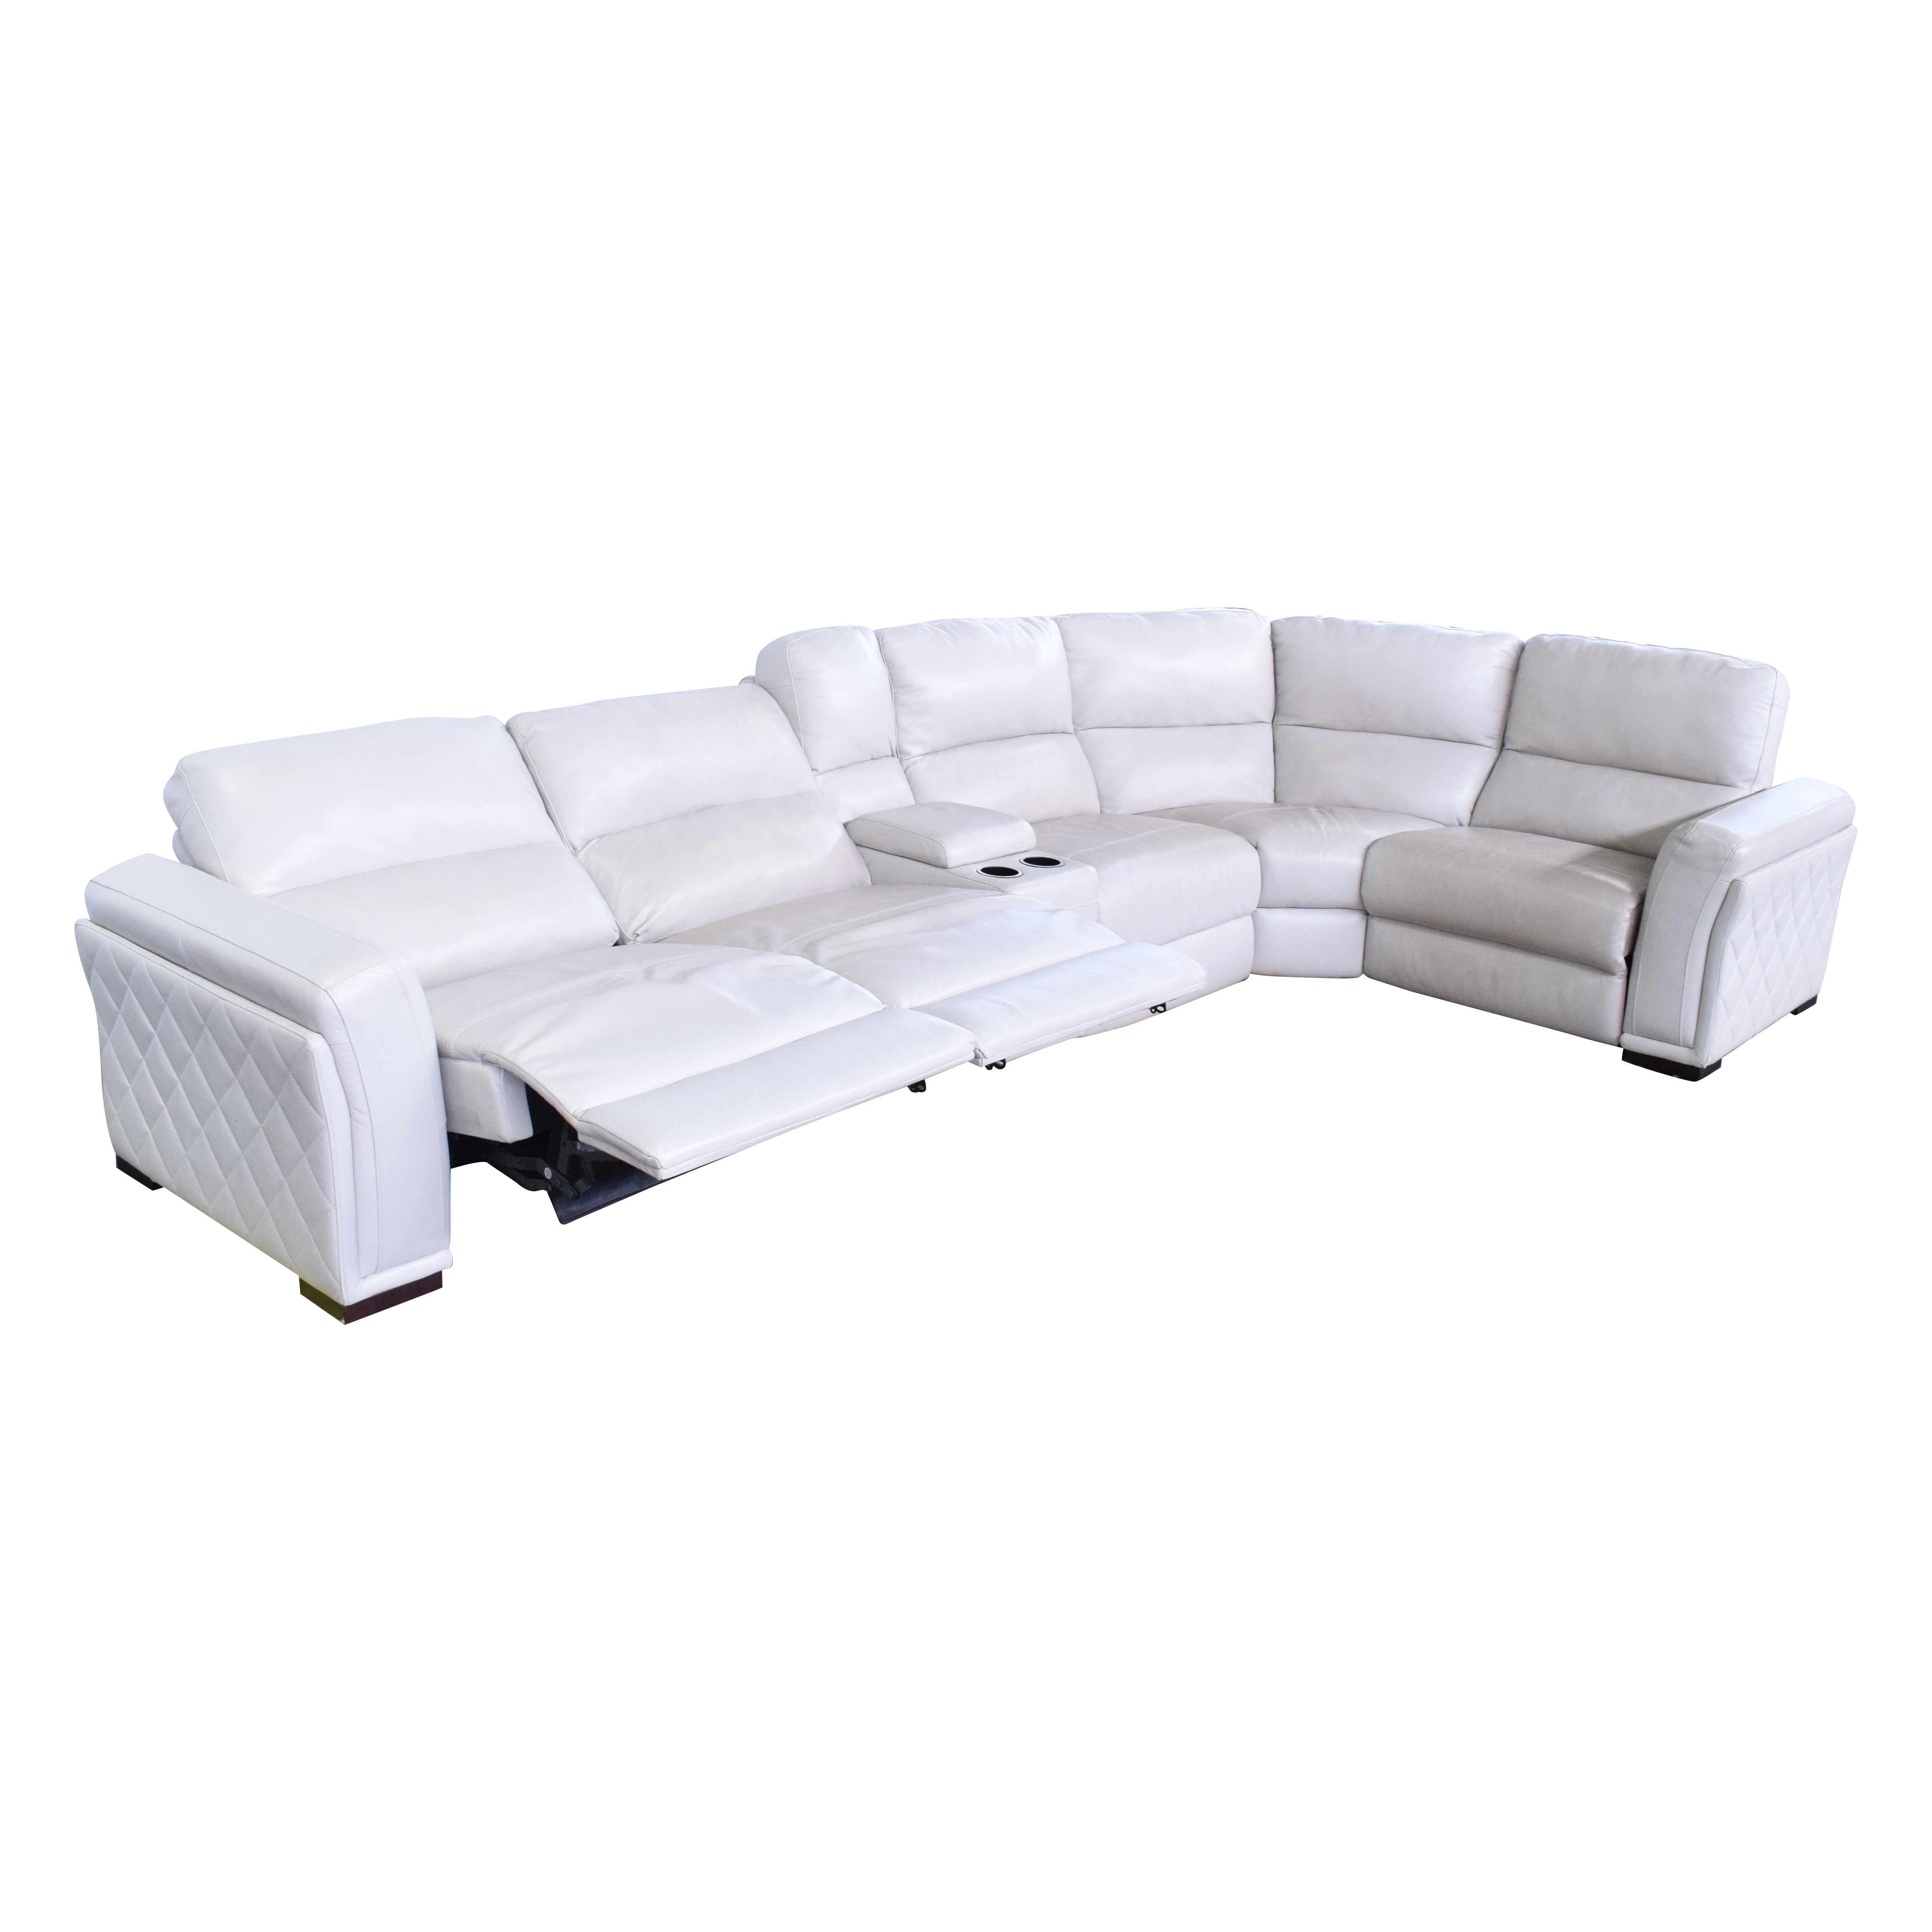 Macy's Macy's Recliner Wedge Sectional Sectionals